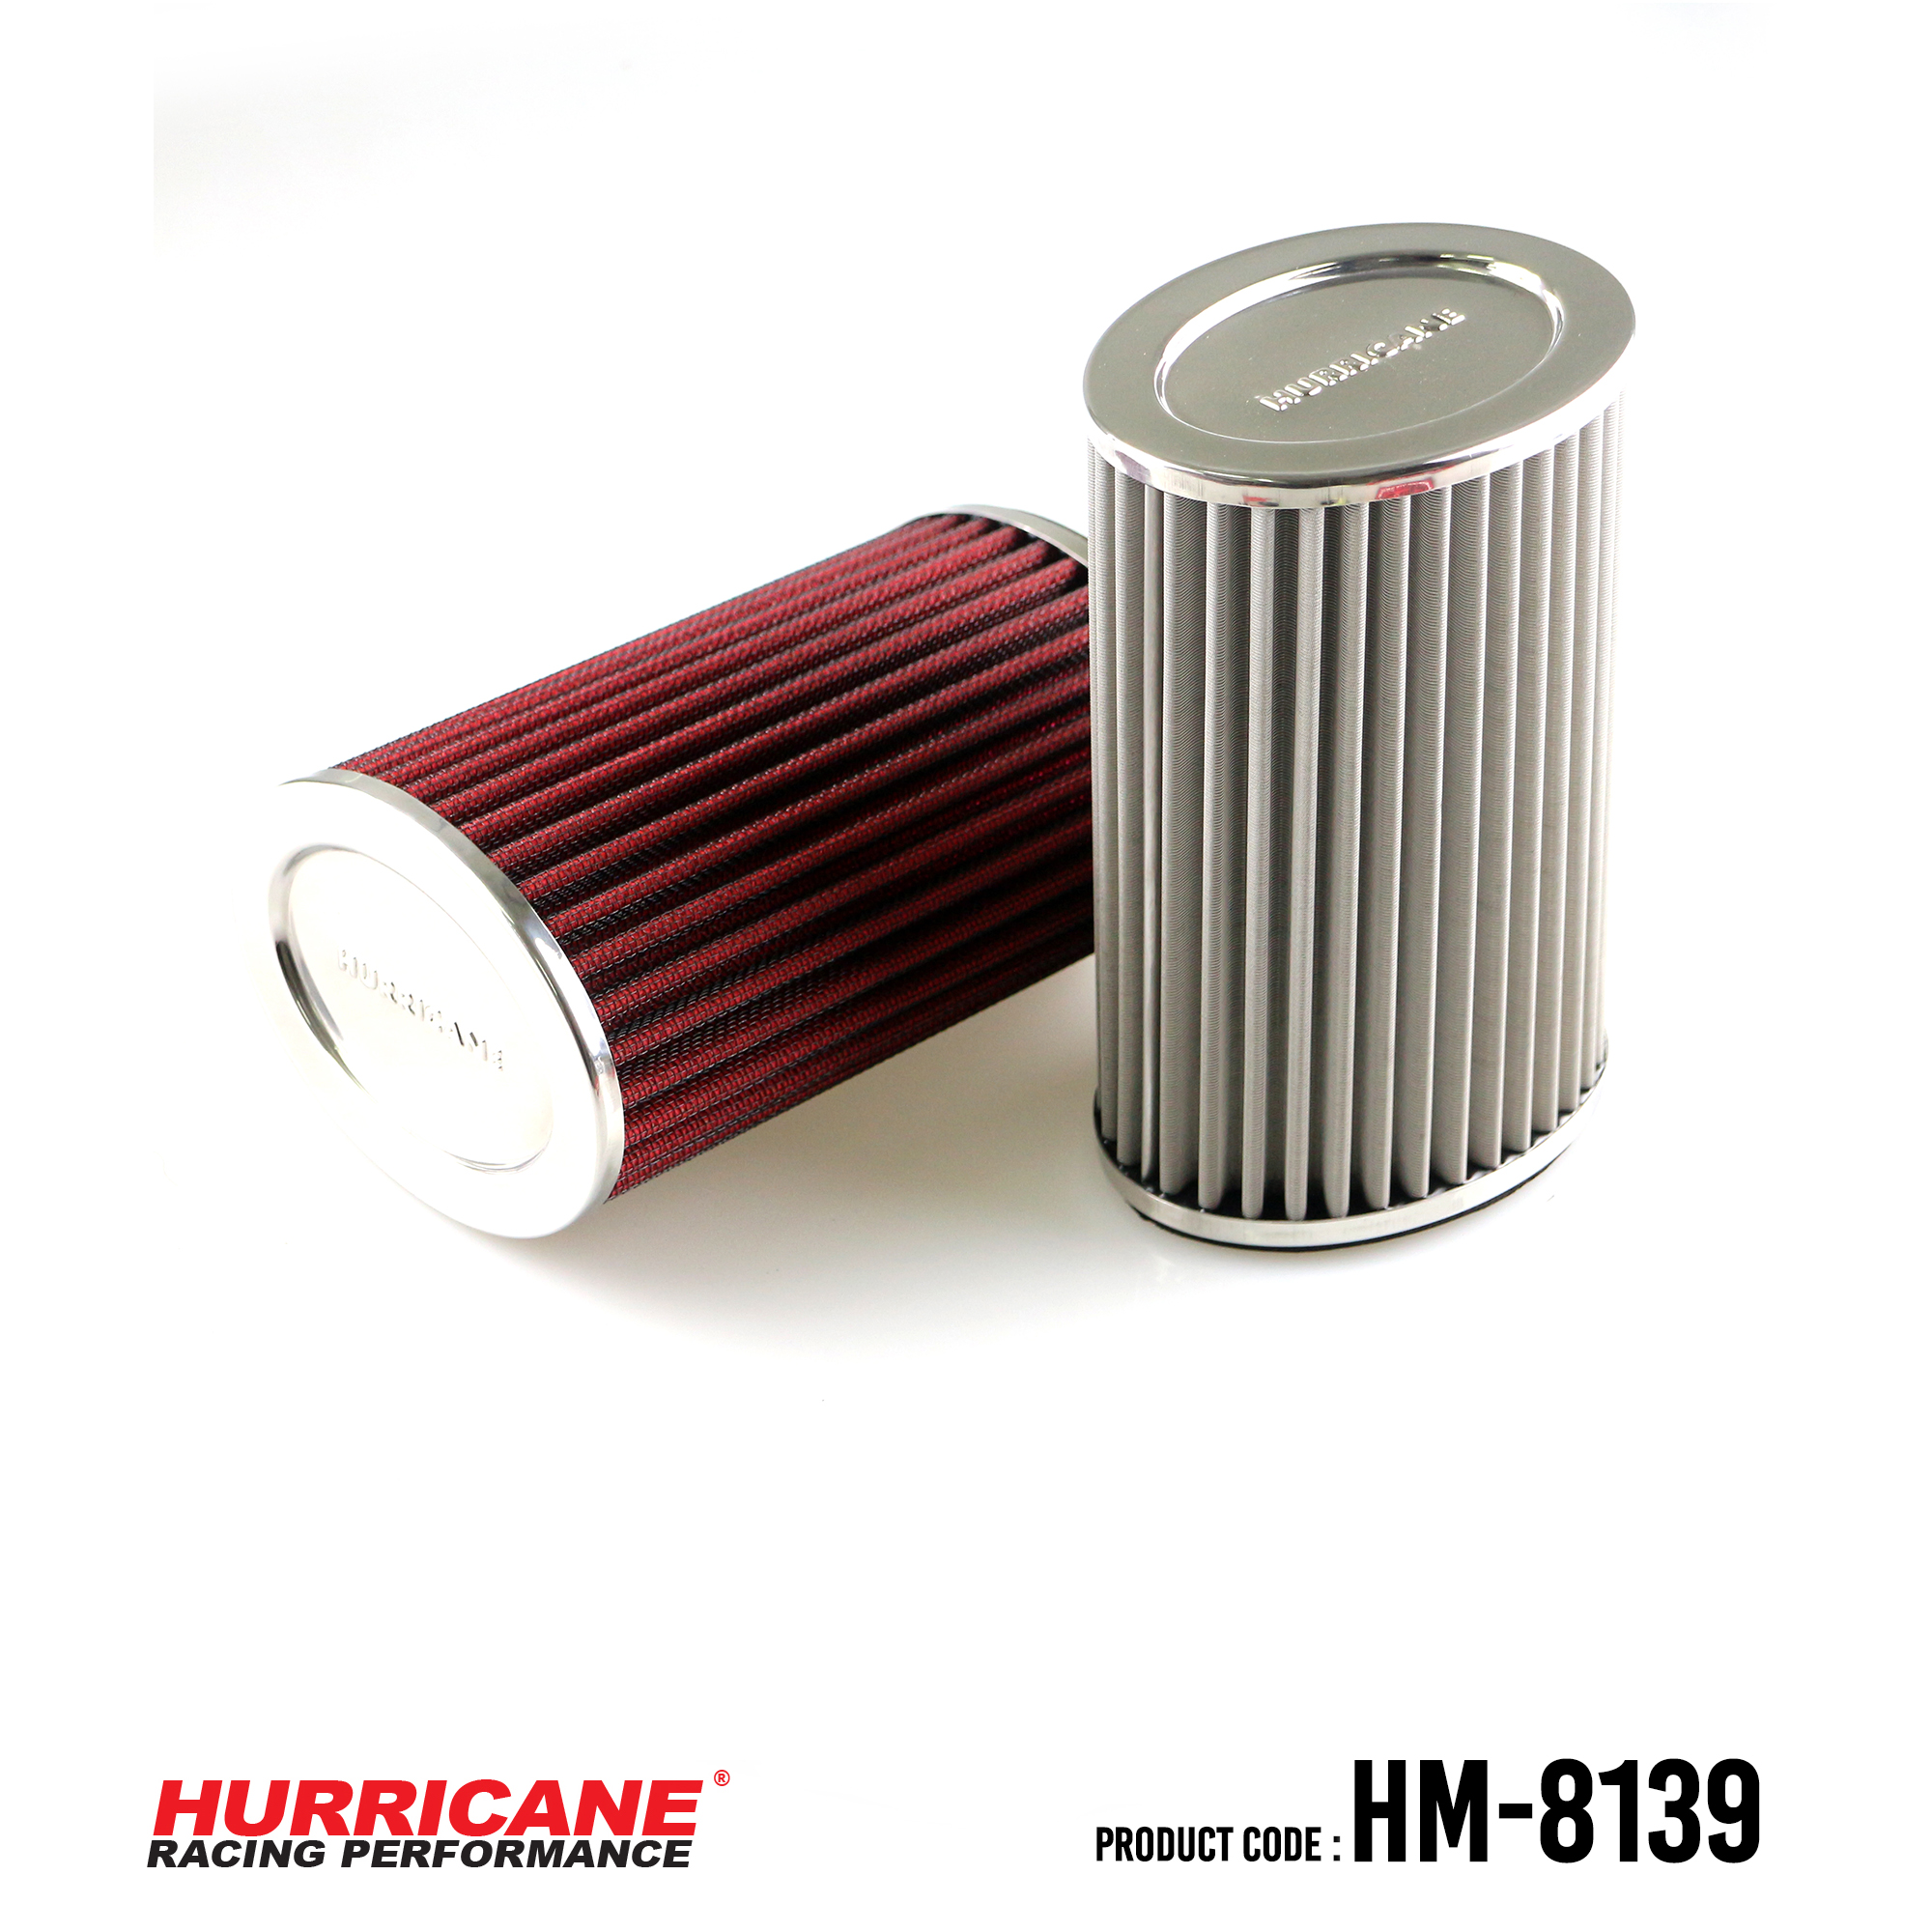 HURRICANE STAINLESS STEEL AIR FILTER FOR HM-8139 Thriumph